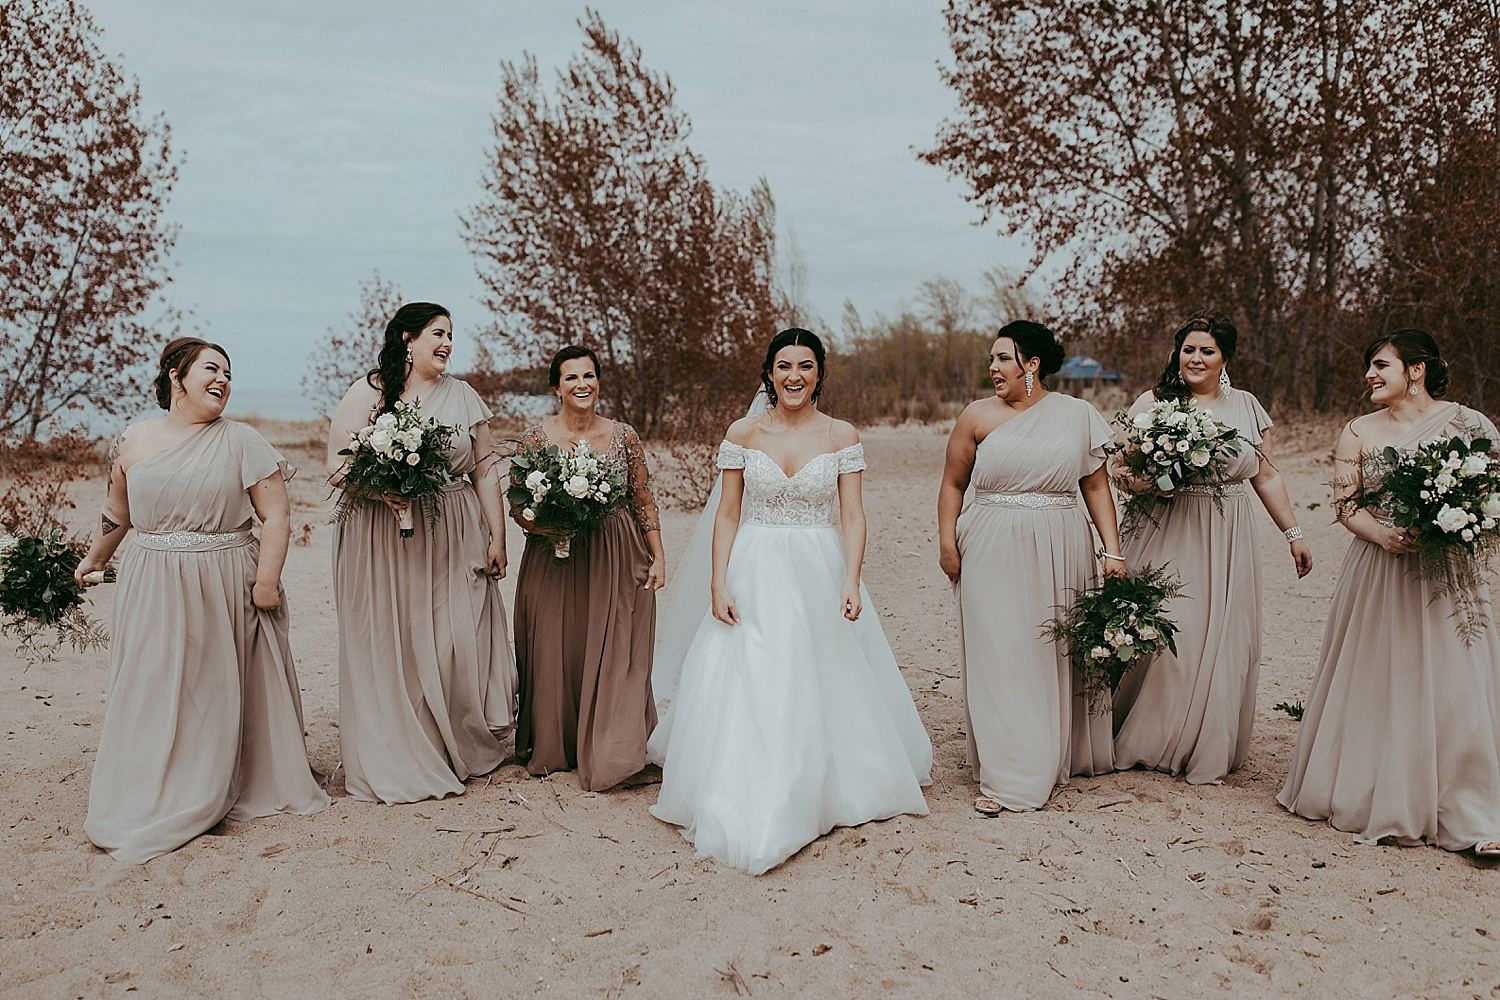 bridesmaids walking on the beach, wedding photography